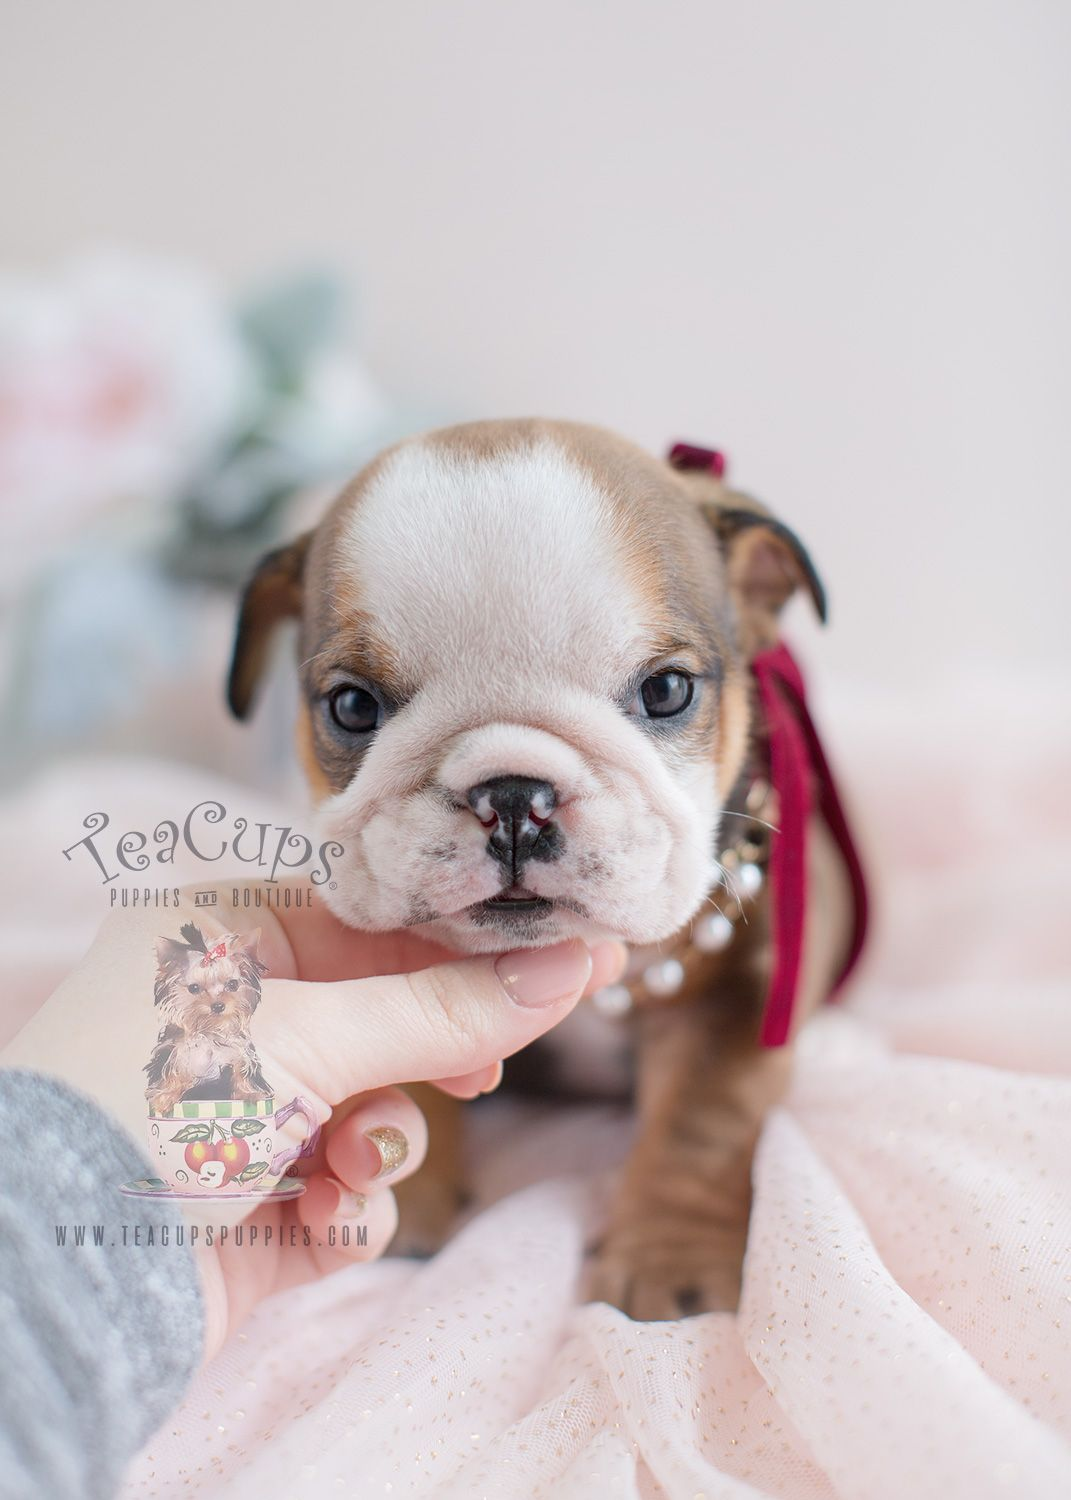 English Bulldog Puppy For Sale Teacup Puppies 017 Bulldog